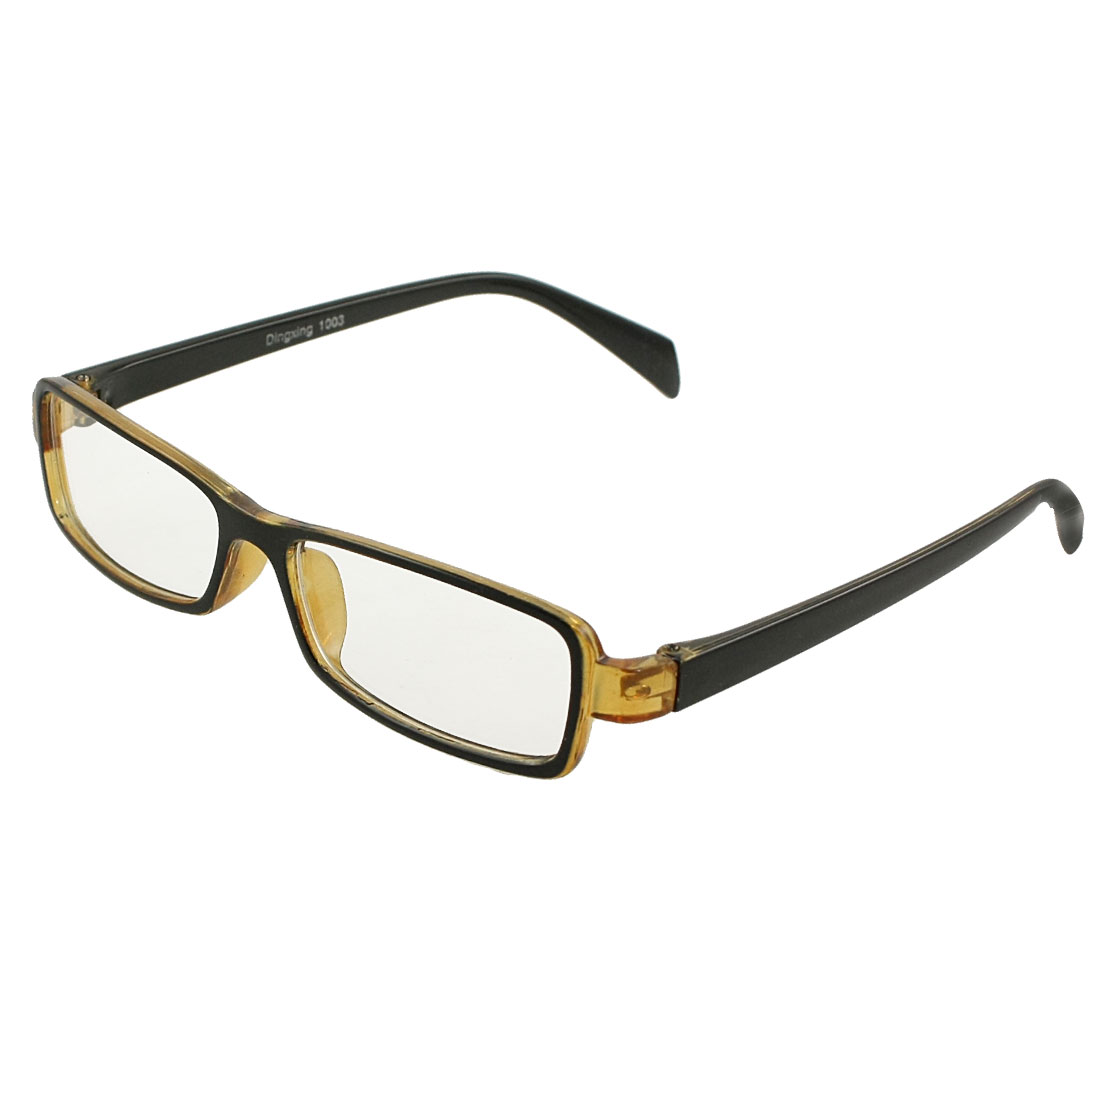 Unisex Light Brown Black Plastic Full Rim Clear Lens Plano Glasses Eyeglasses